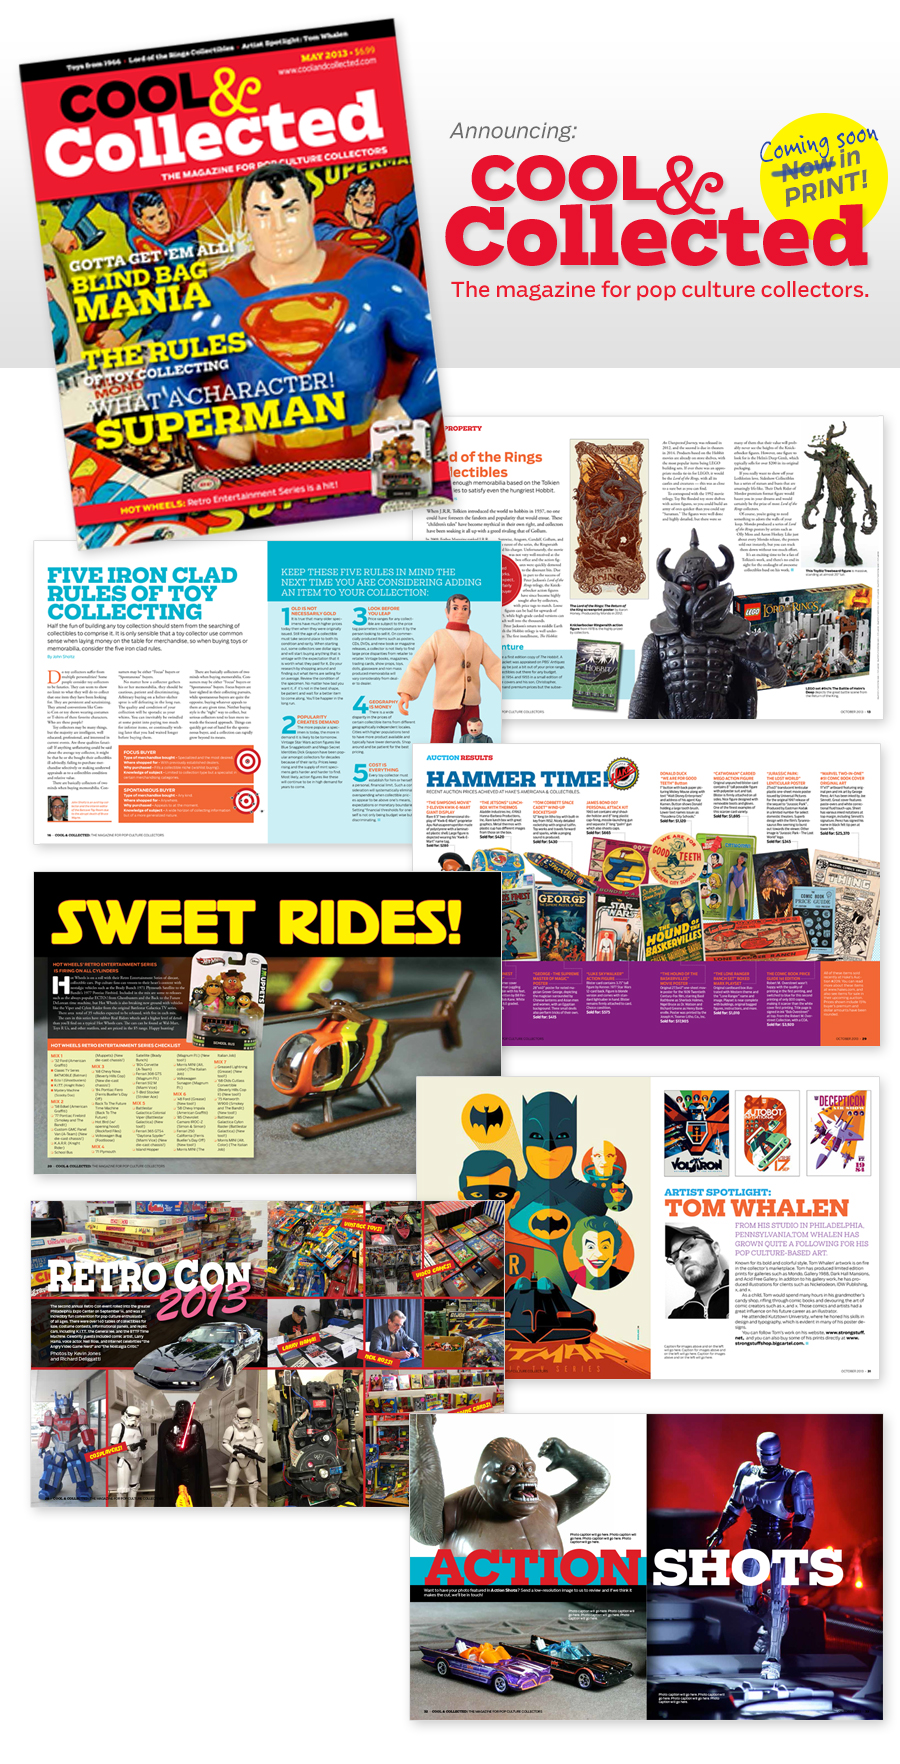 Cool & Collected Magazine for pop culture collectors